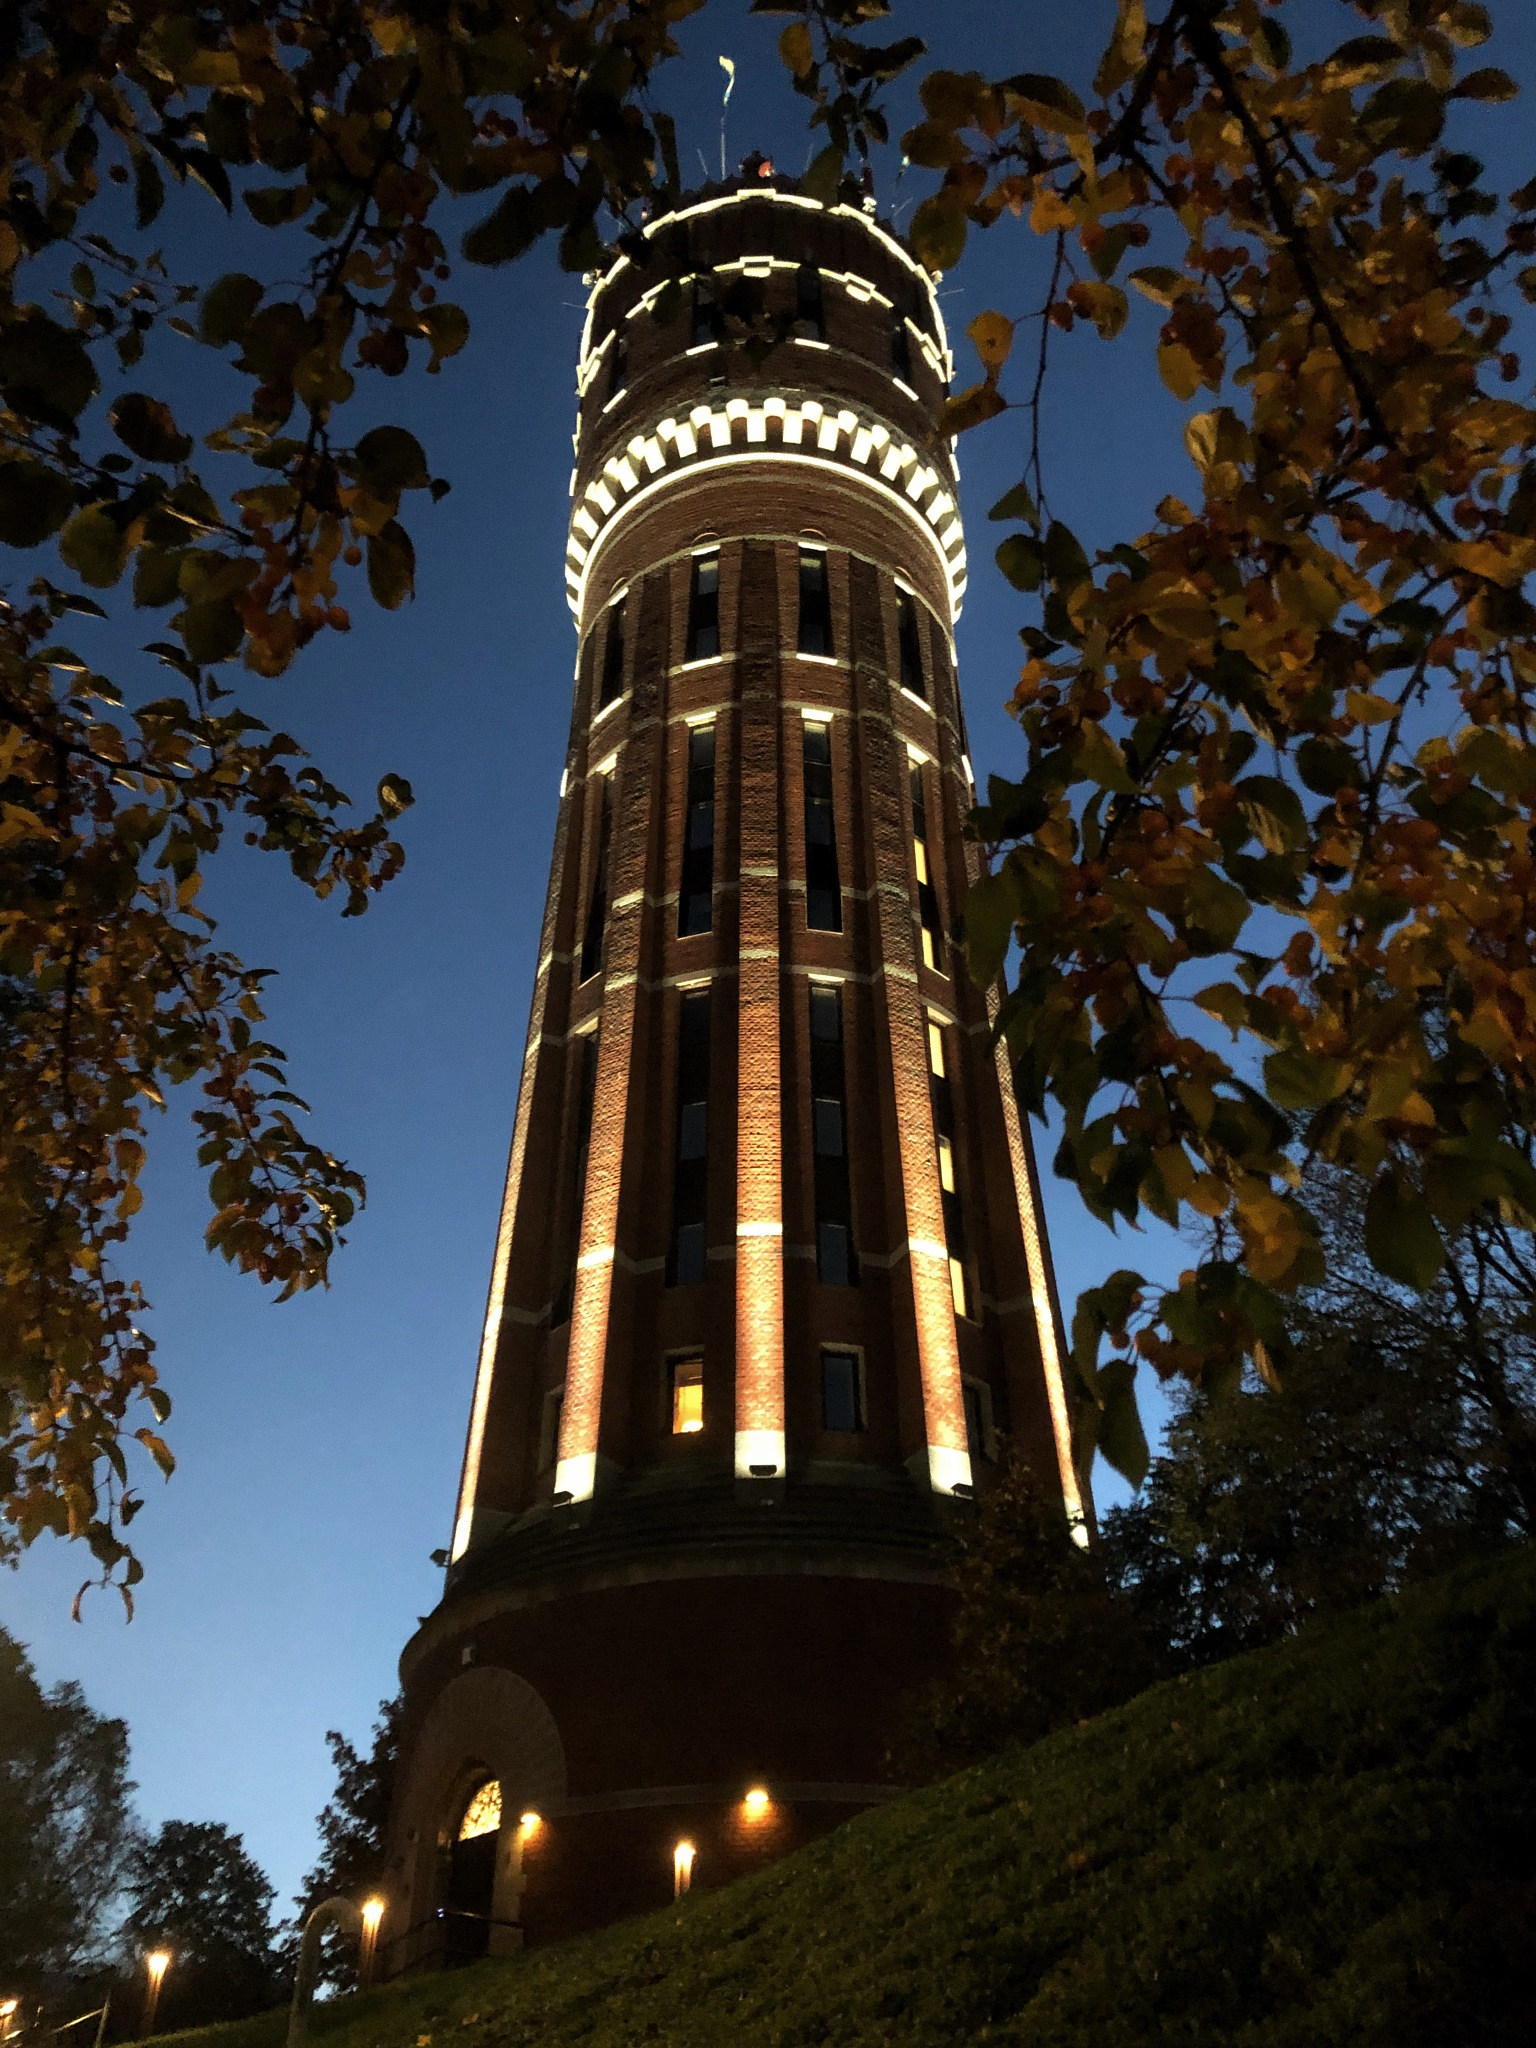 Tower of power by mats.thunman.1